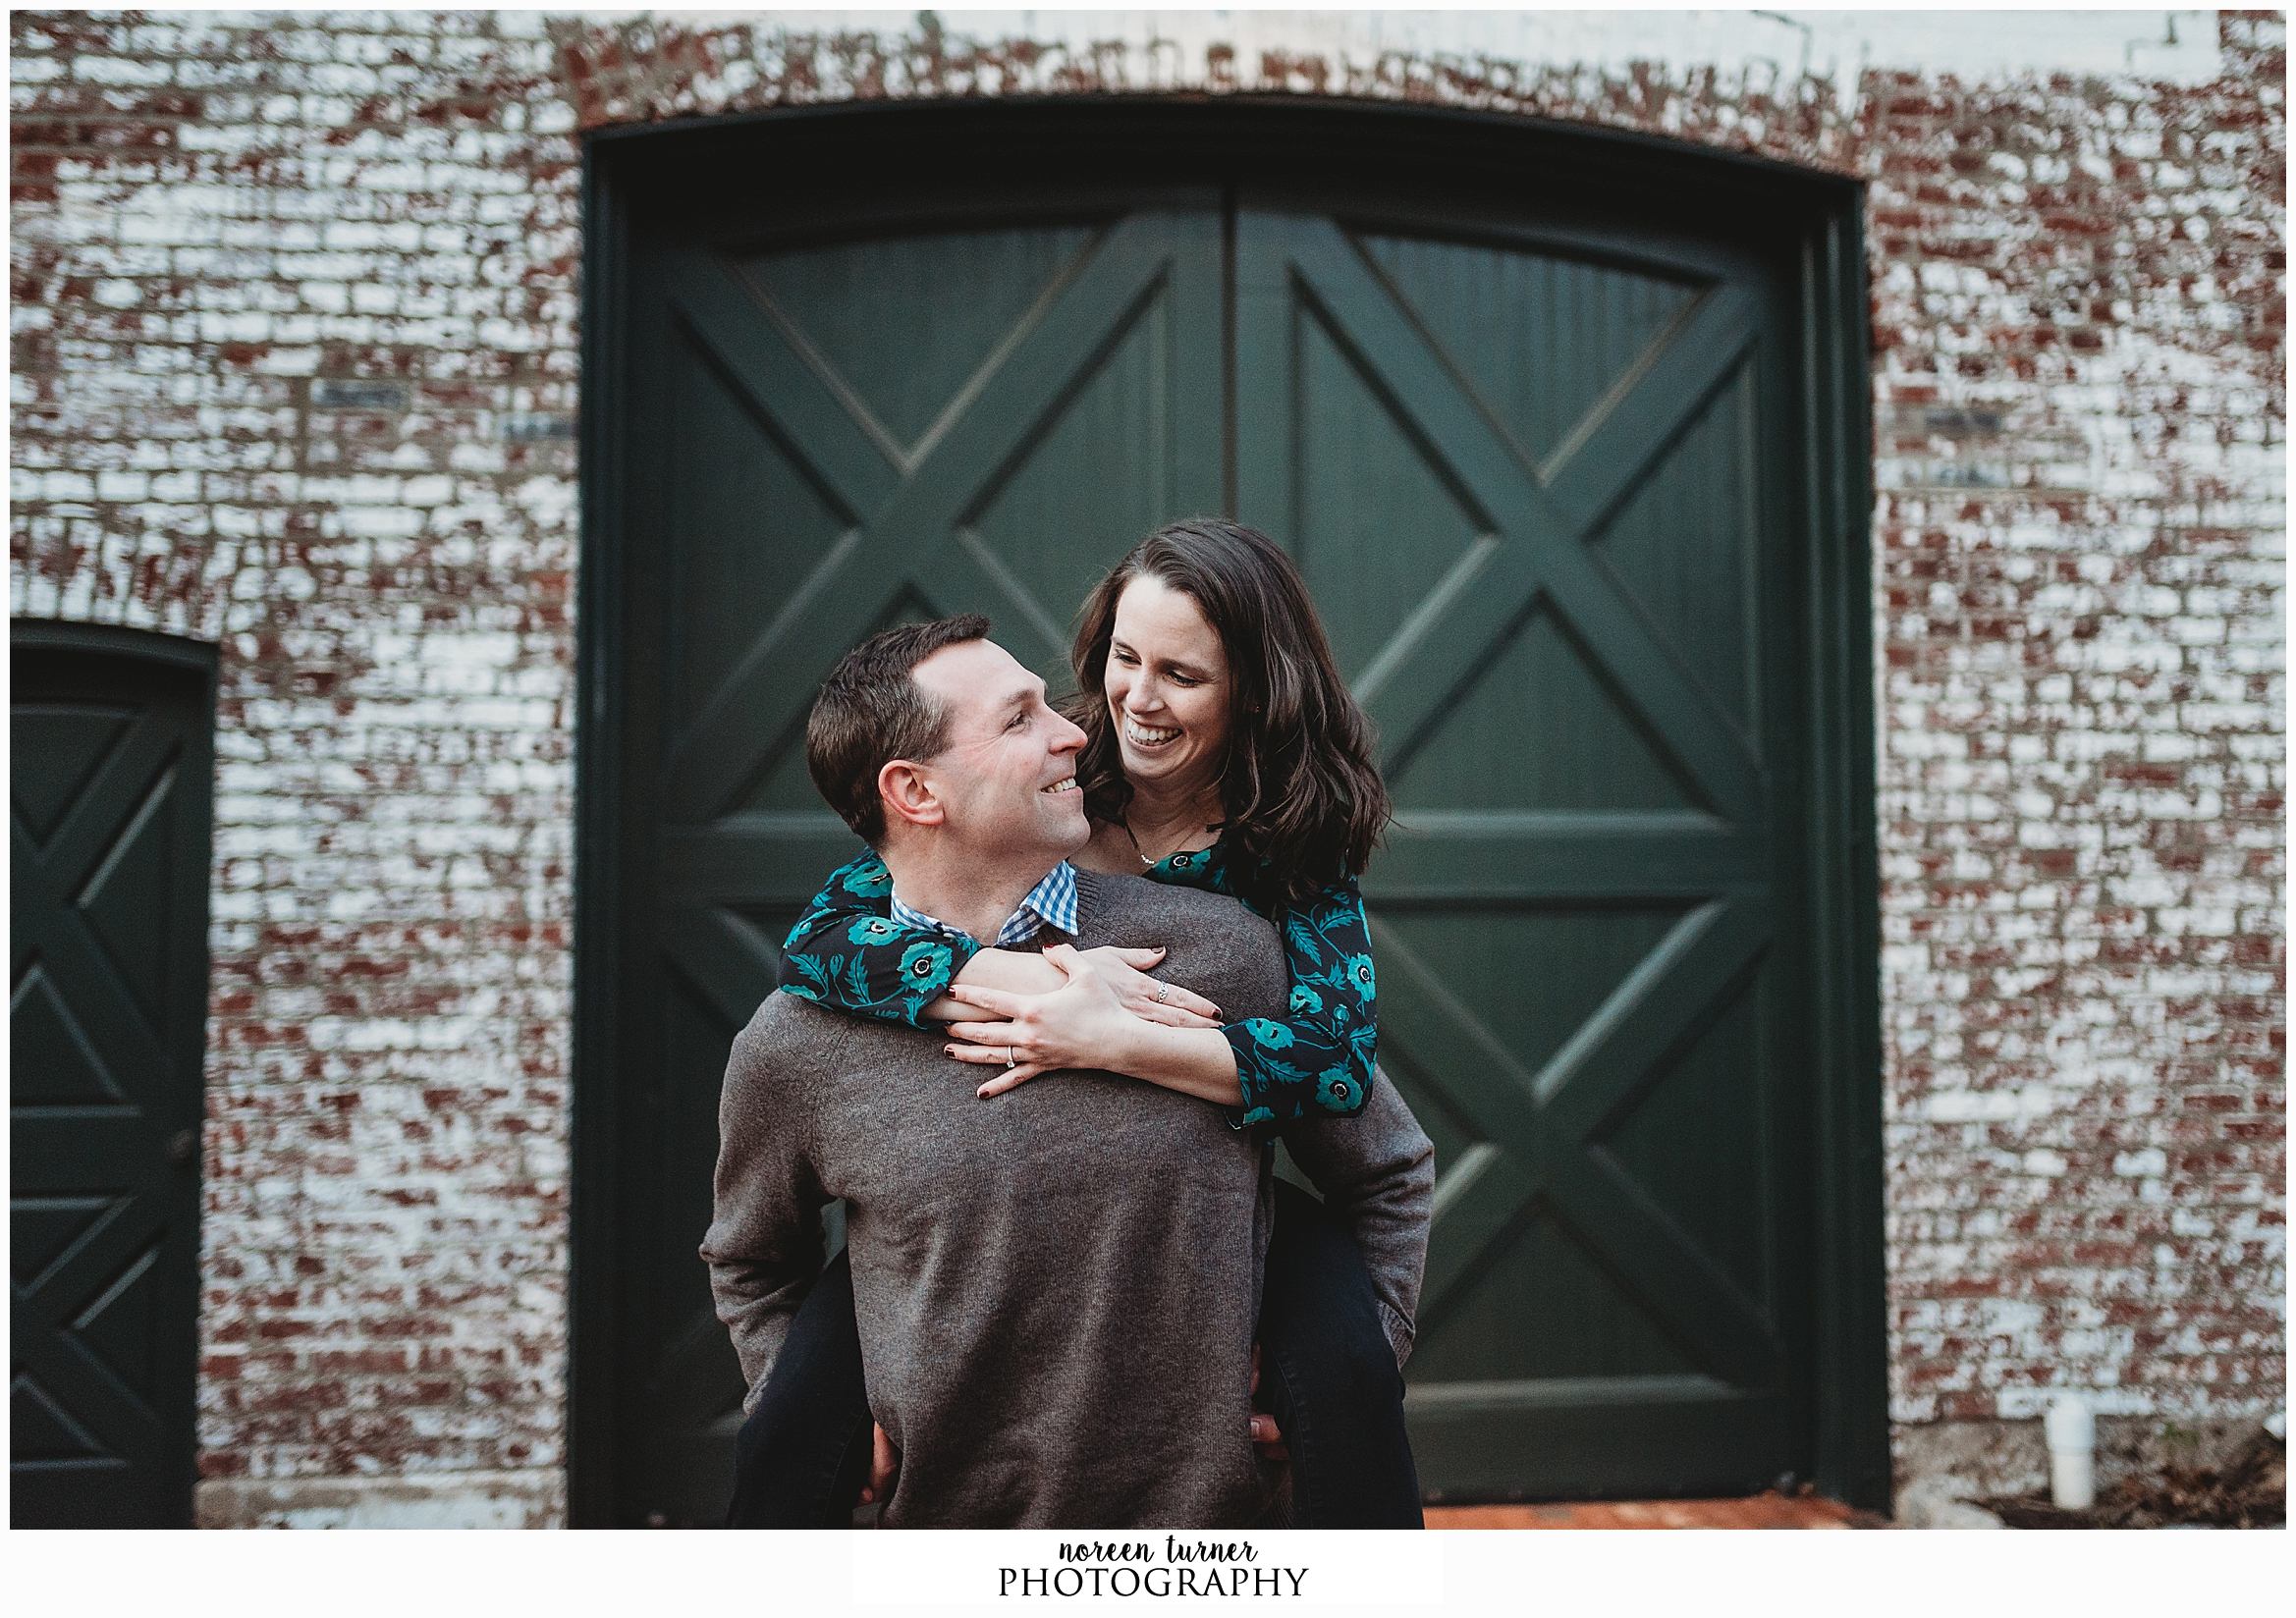 New Hope Engagement Session